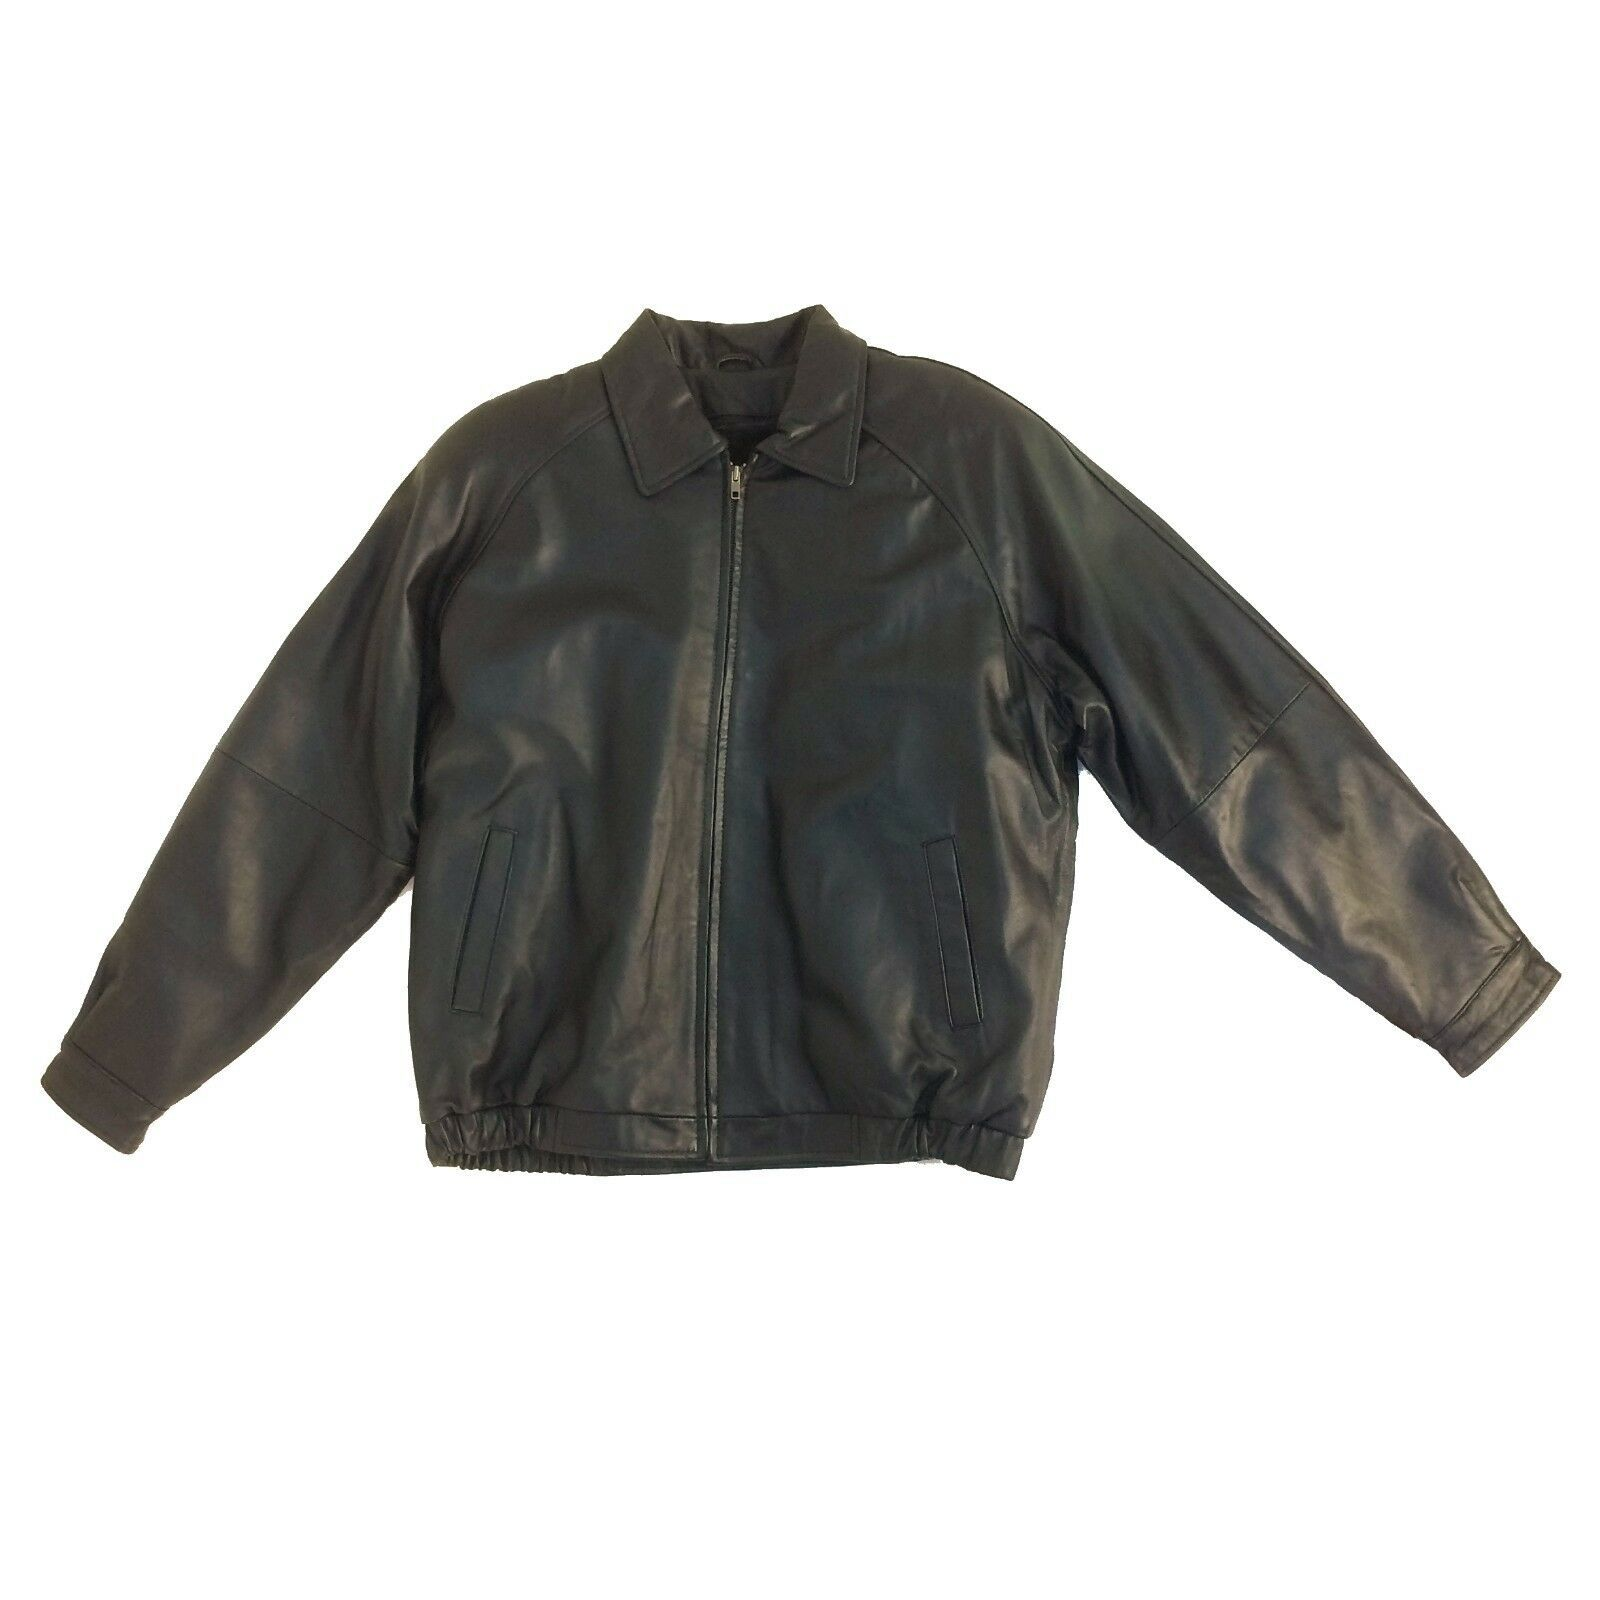 Assorted Brands ,Vintage, Men's Genuine Leather Bomber (Short) Jacket, Group-2 image 4